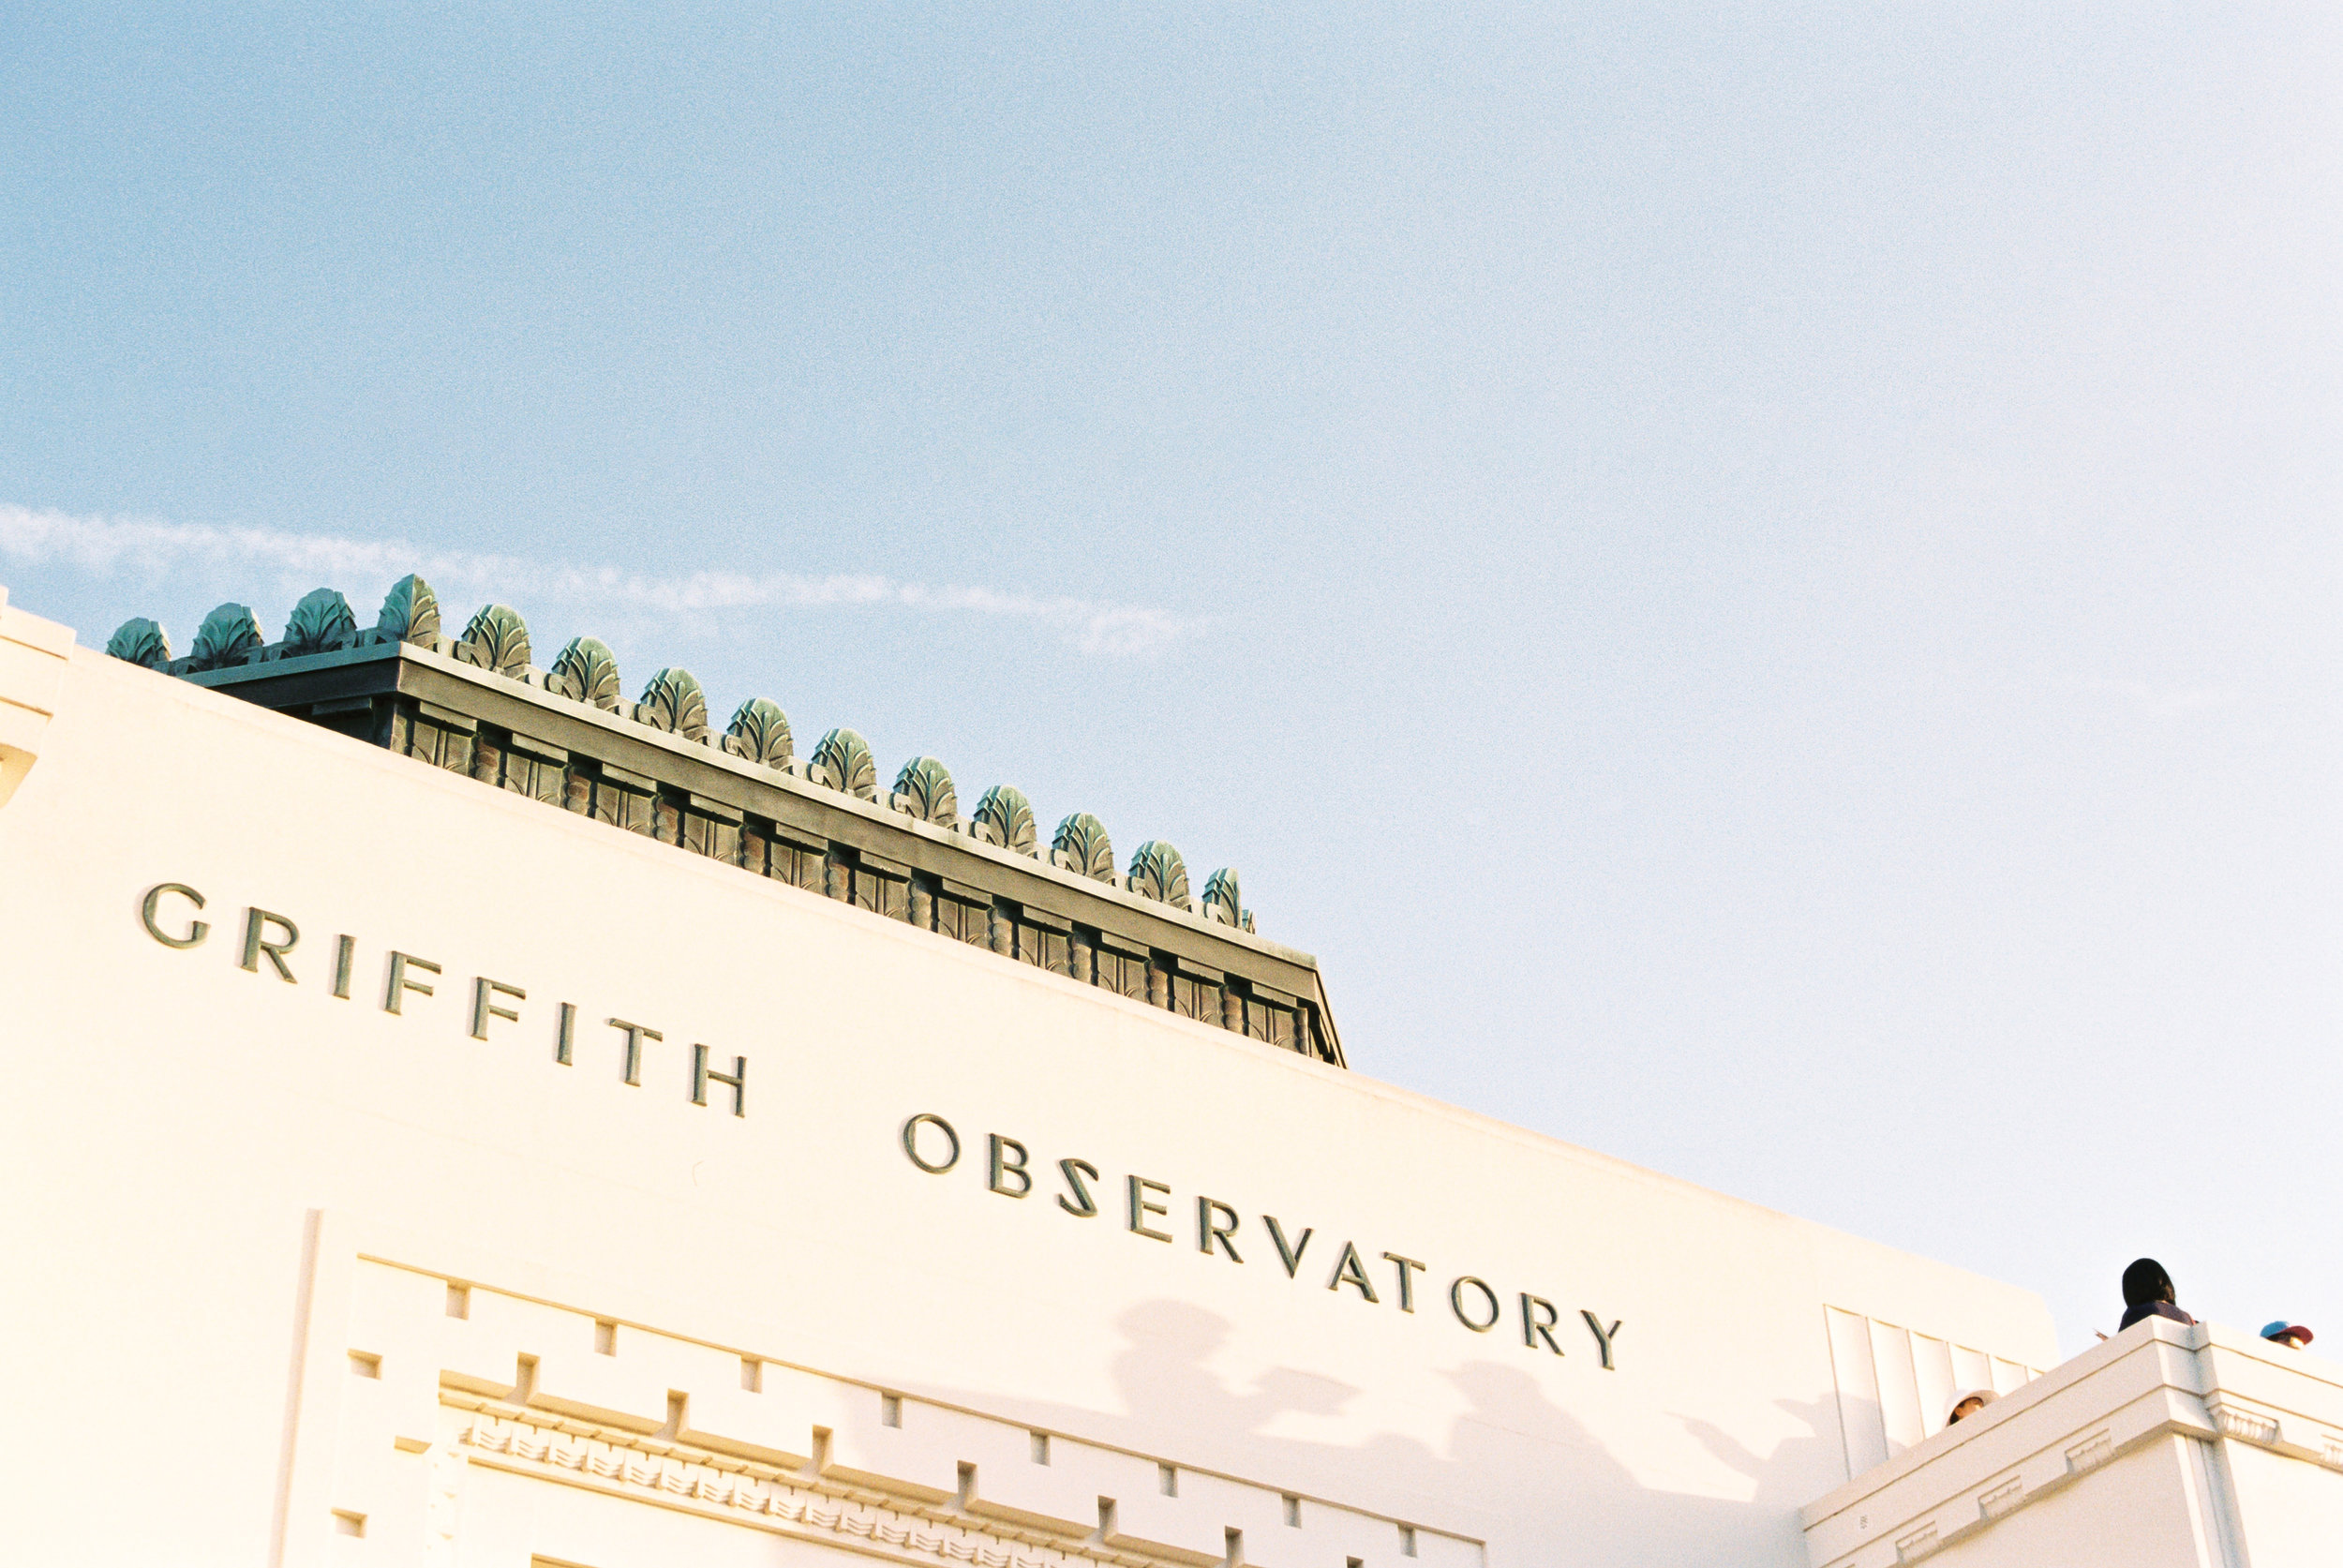 Griffith Observatory 3.jpg